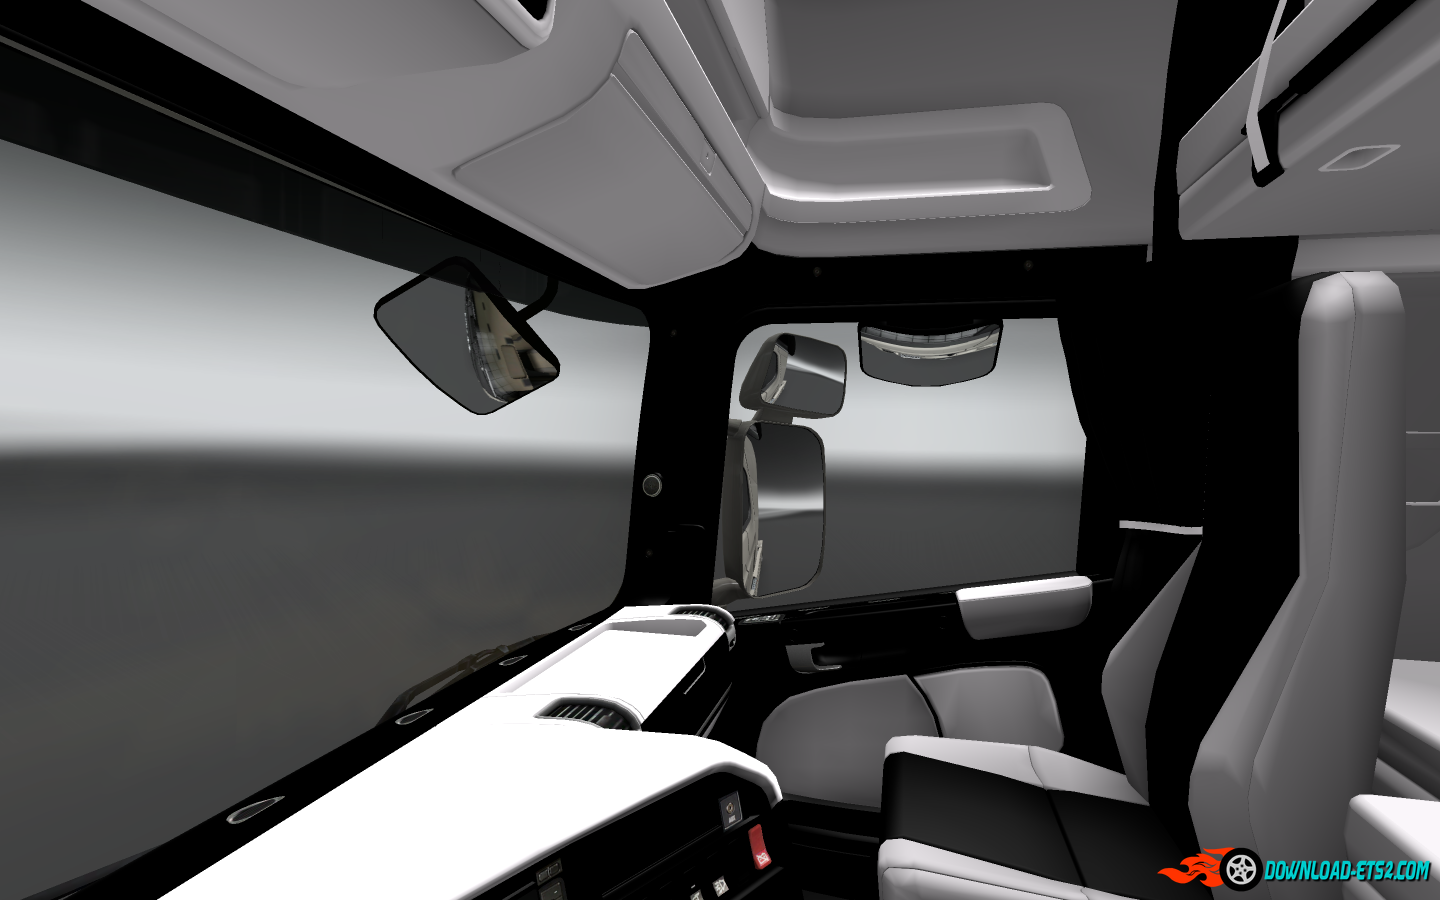 Scania Interior Black / White and Speed indicator